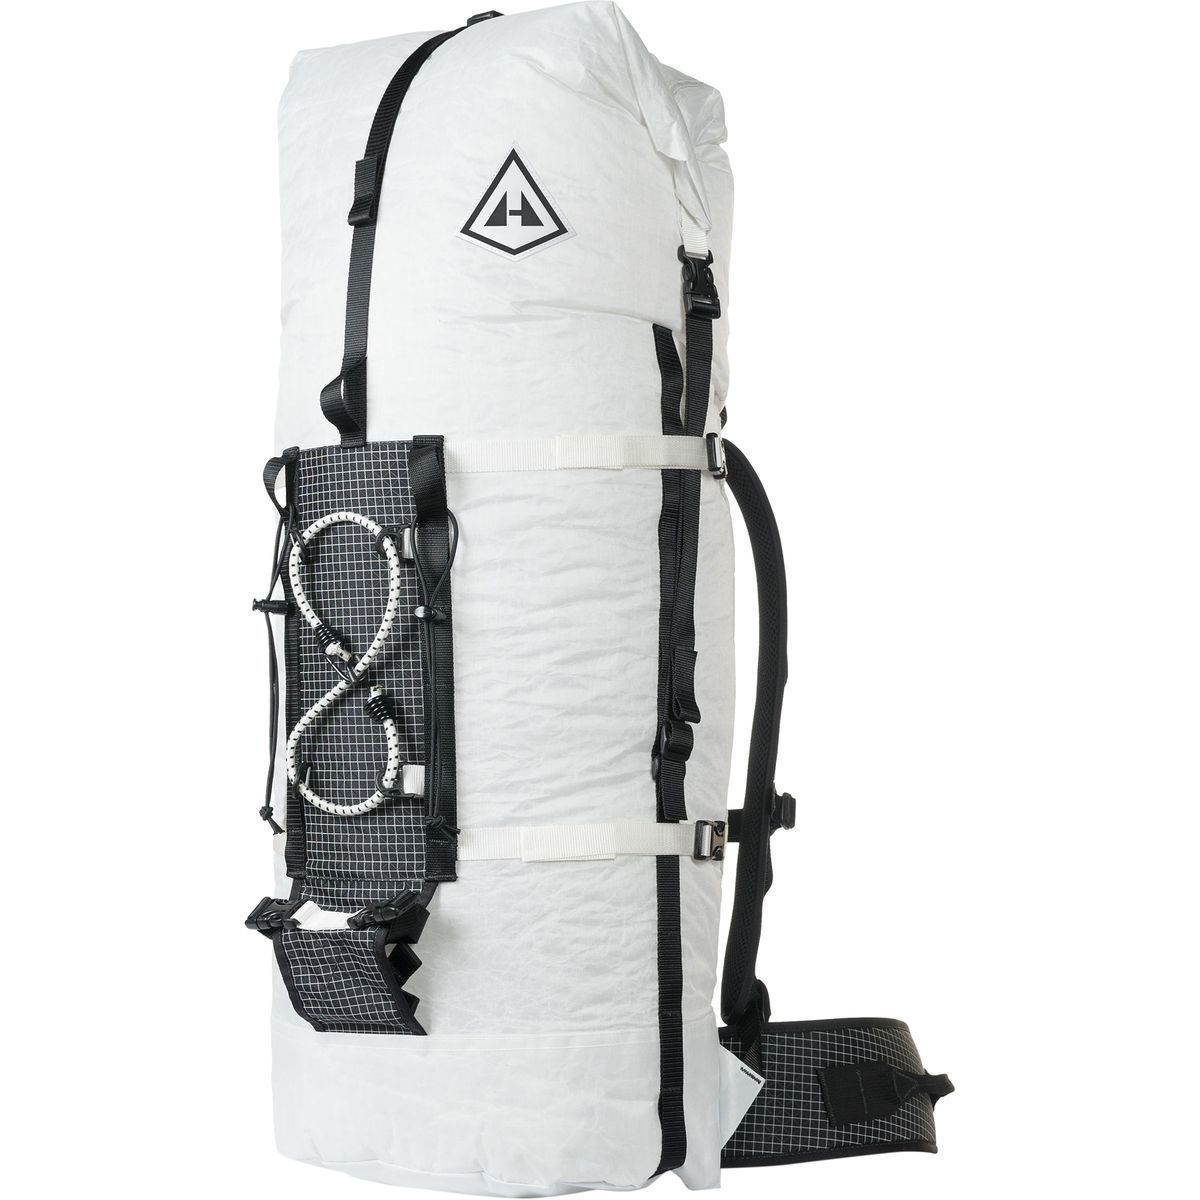 Hyperlite Mountain Gear 3400 Ice Pack